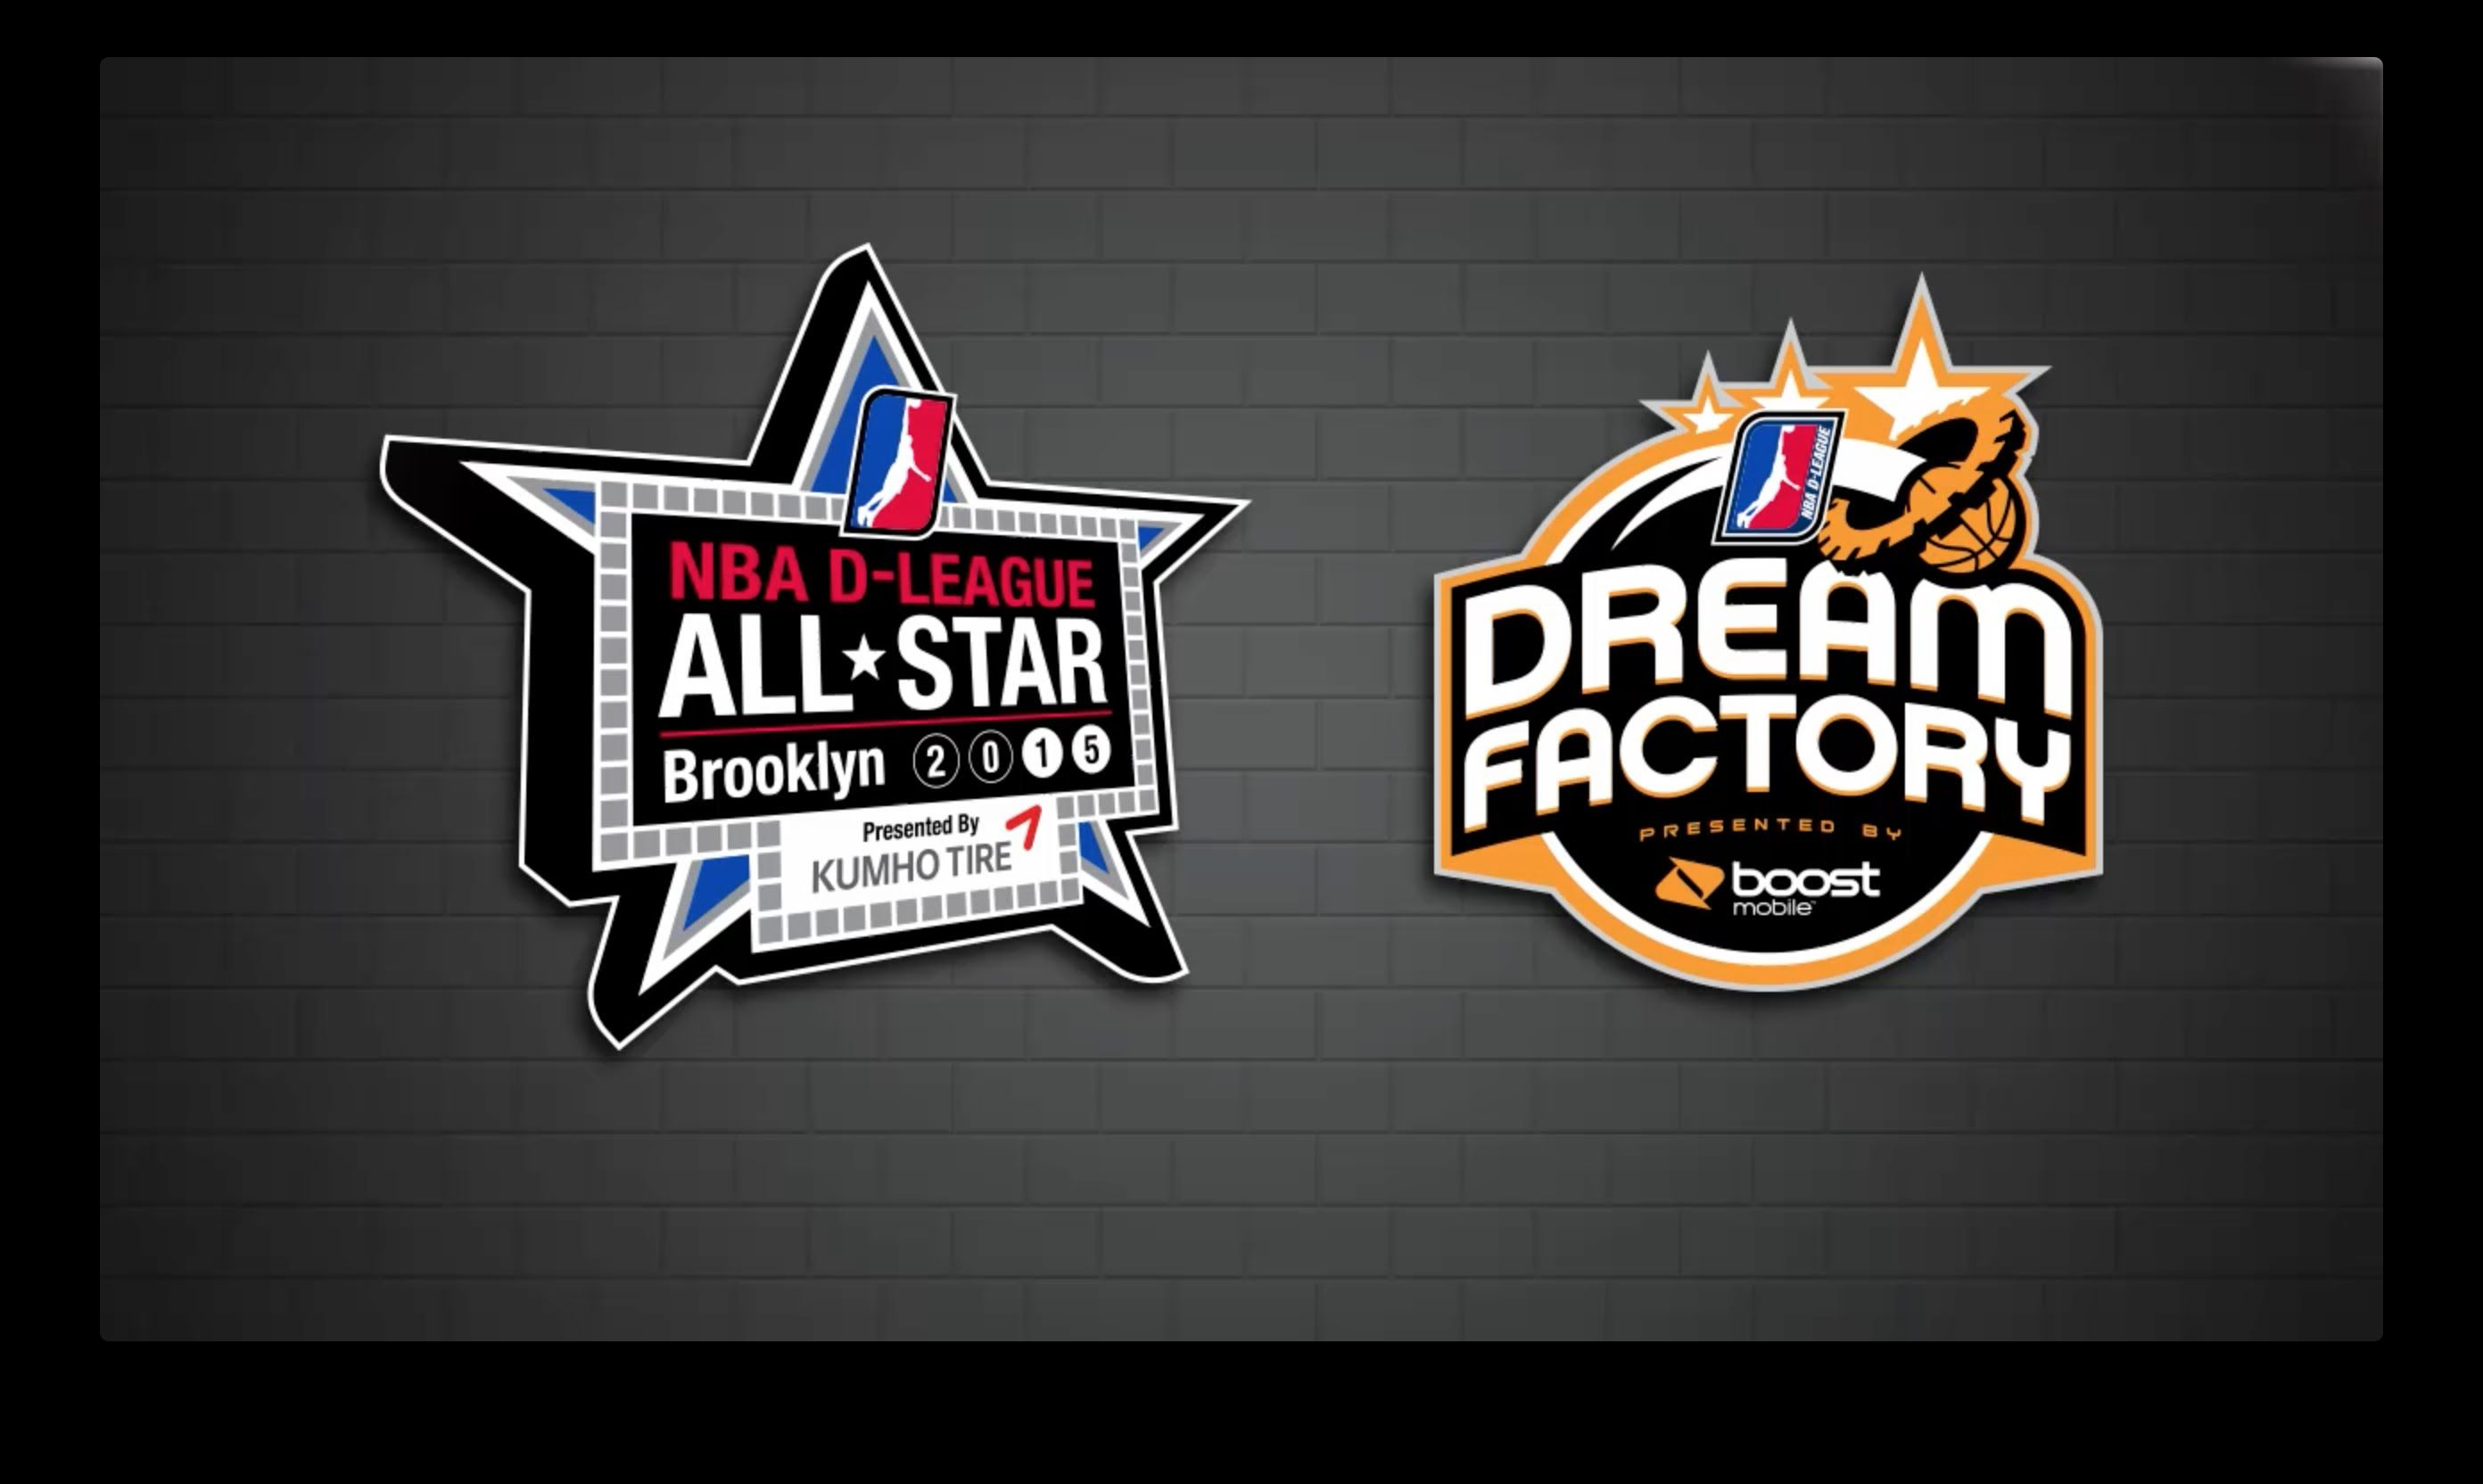 2015 NBA D-League All-Star Game & Dream Factory - YouTube  Hoopsters